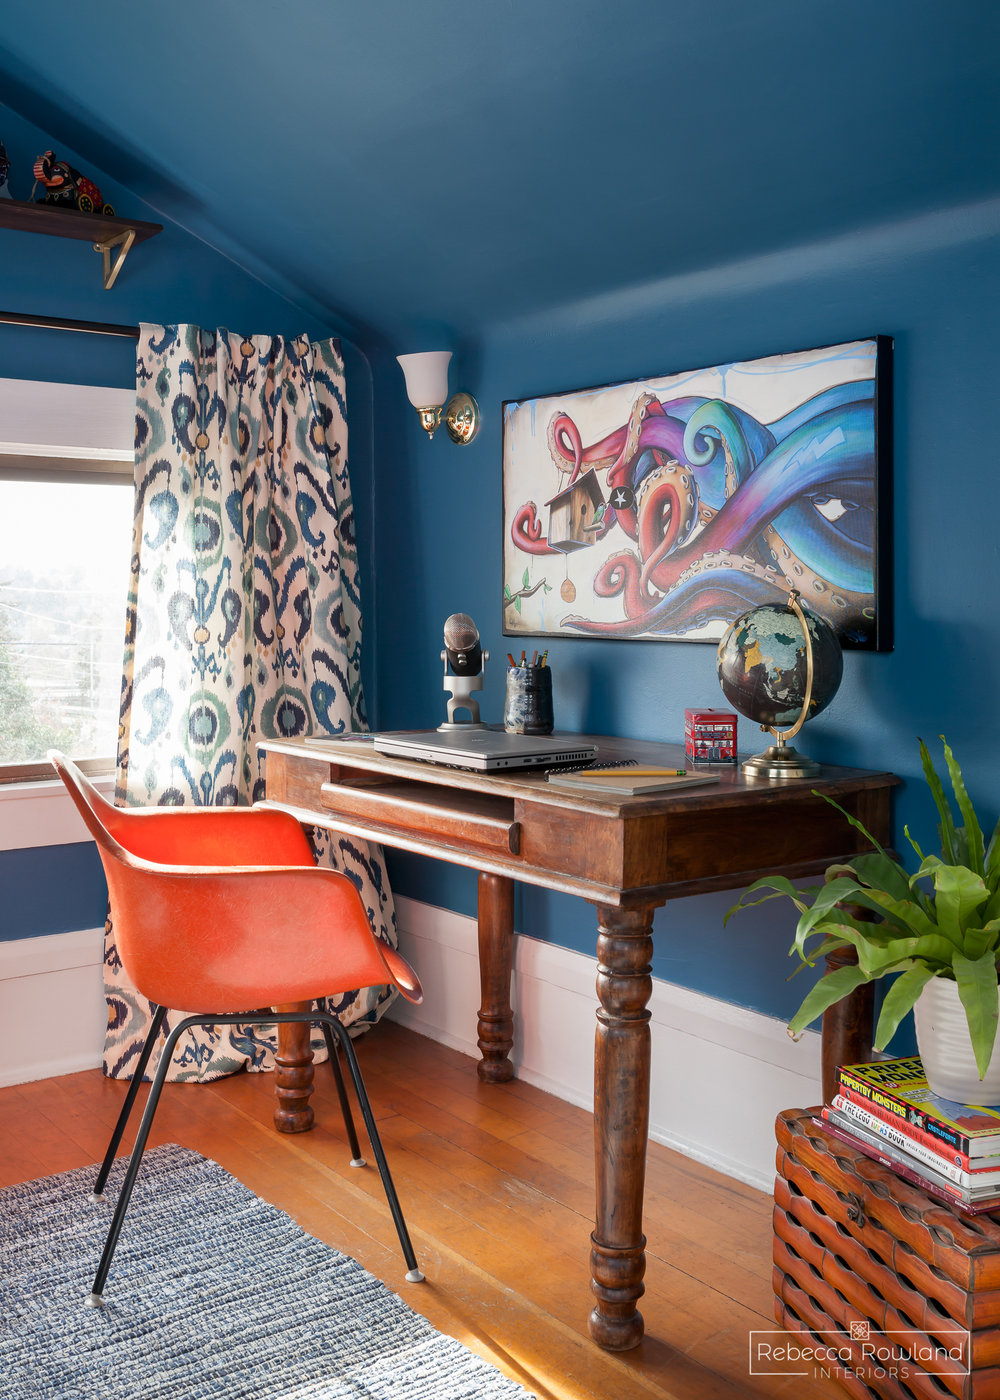 Rebecca_Rowland_Interiors_Seattle_Craftsman_Interior_Design_Teen_Bedroom_Before